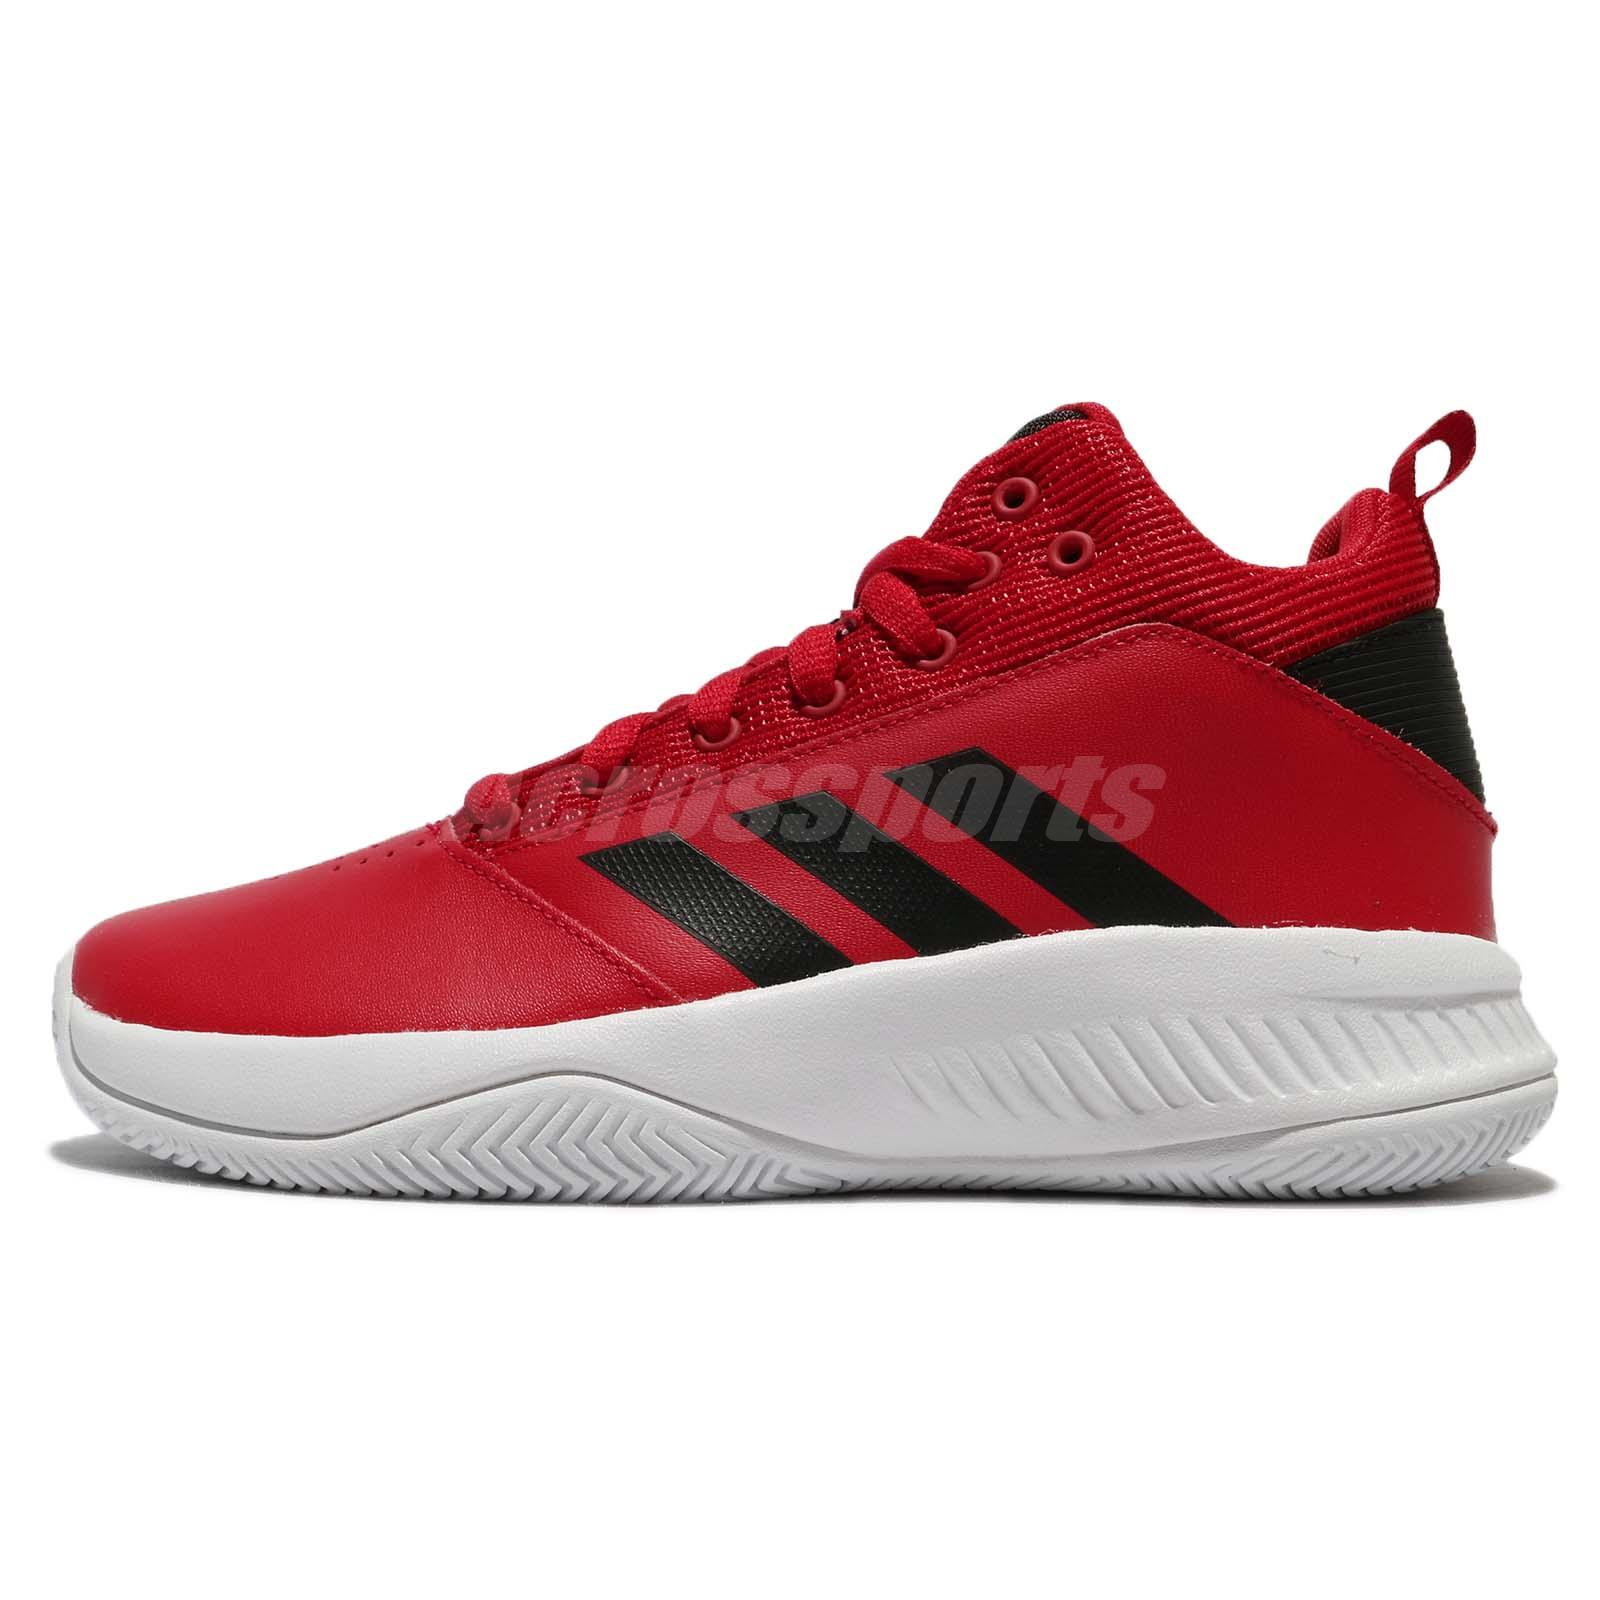 adidas CF Ilation 2.0 K Scarlet Black Kids Women Basketball Shoes Sneaker  DB0138